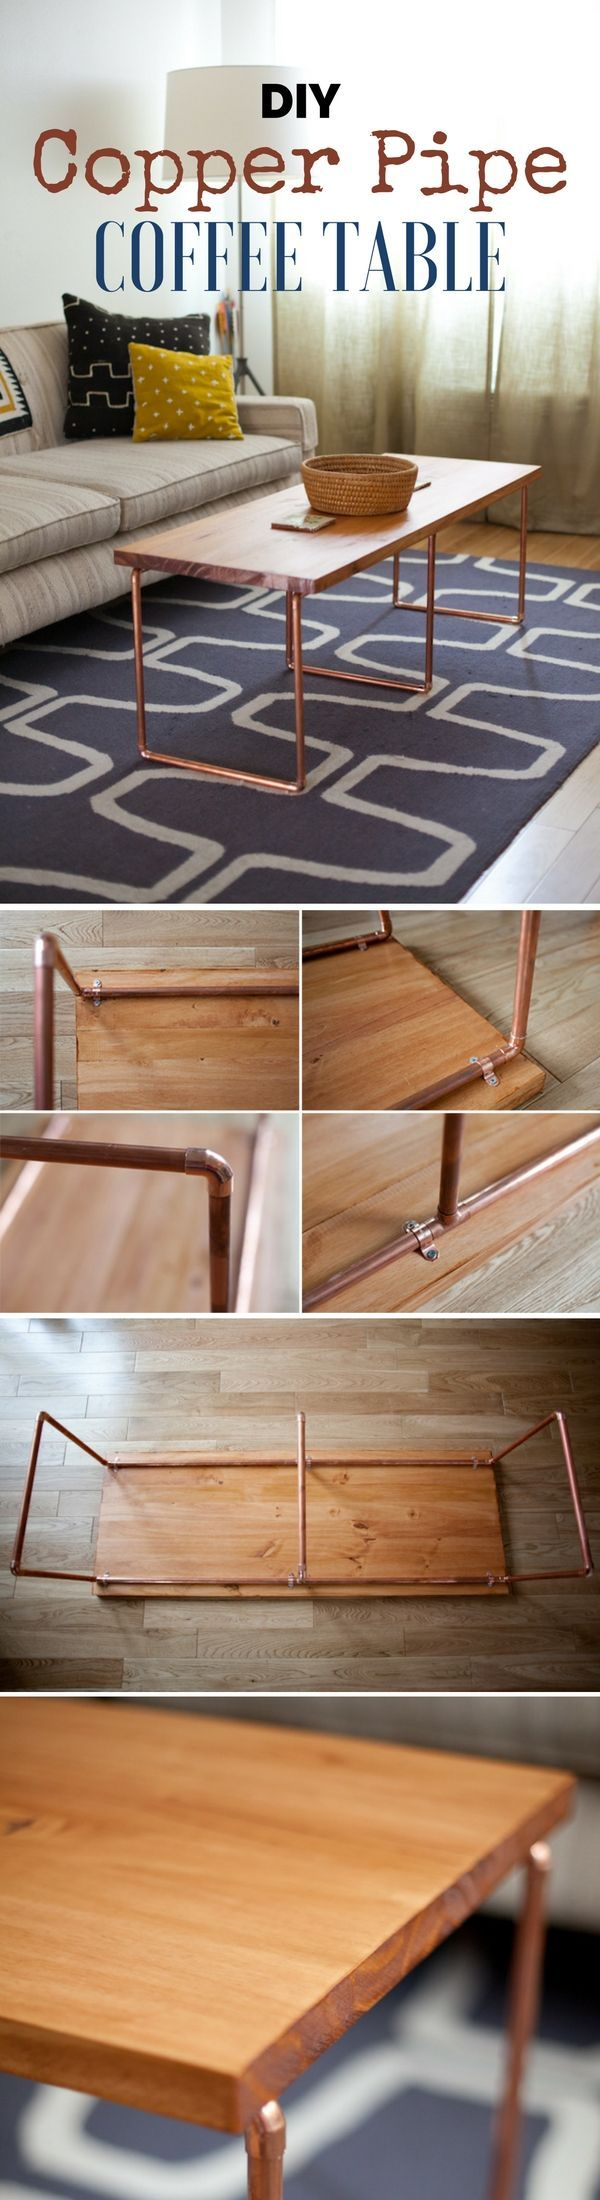 Best 25 Copper coffee table ideas on Pinterest